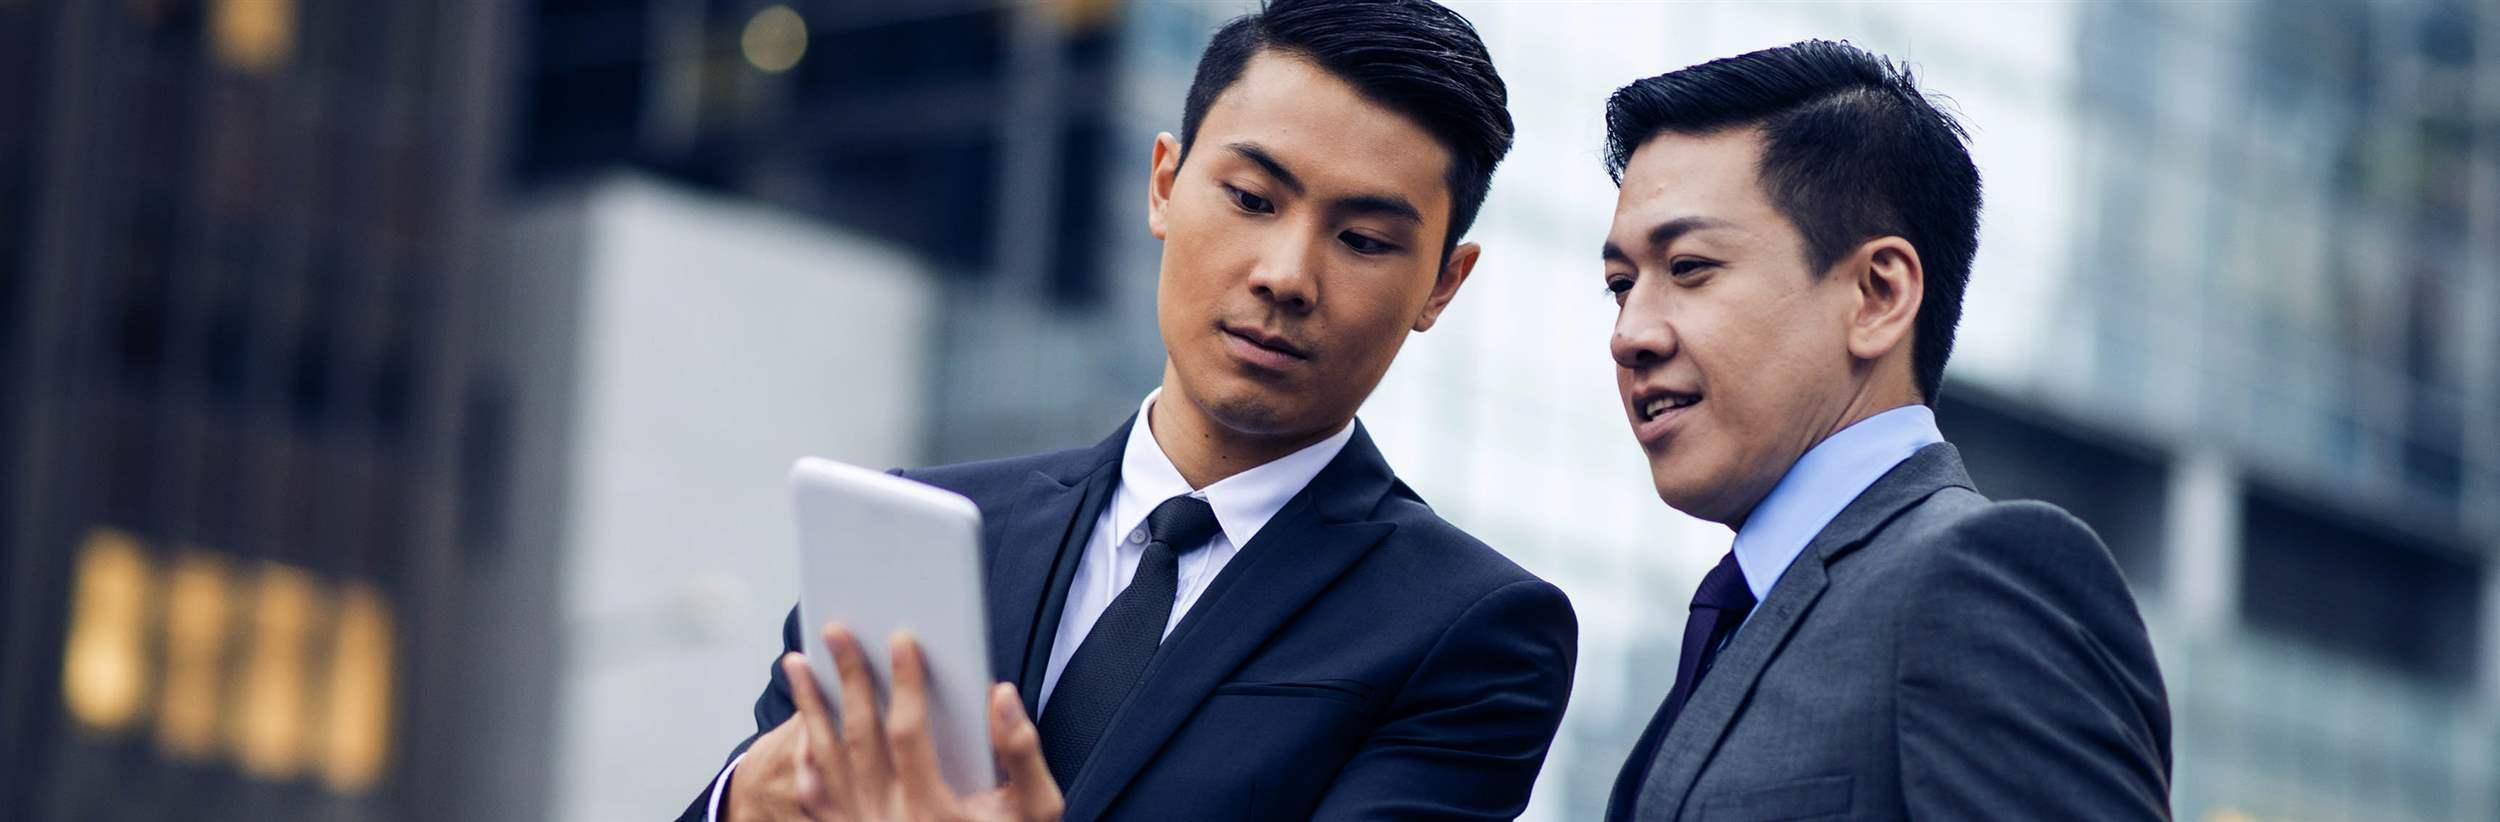 Two asian businessmen talking outdoors. One man is holding his digital tablet and looking at it. Office buildings in back, defocused.